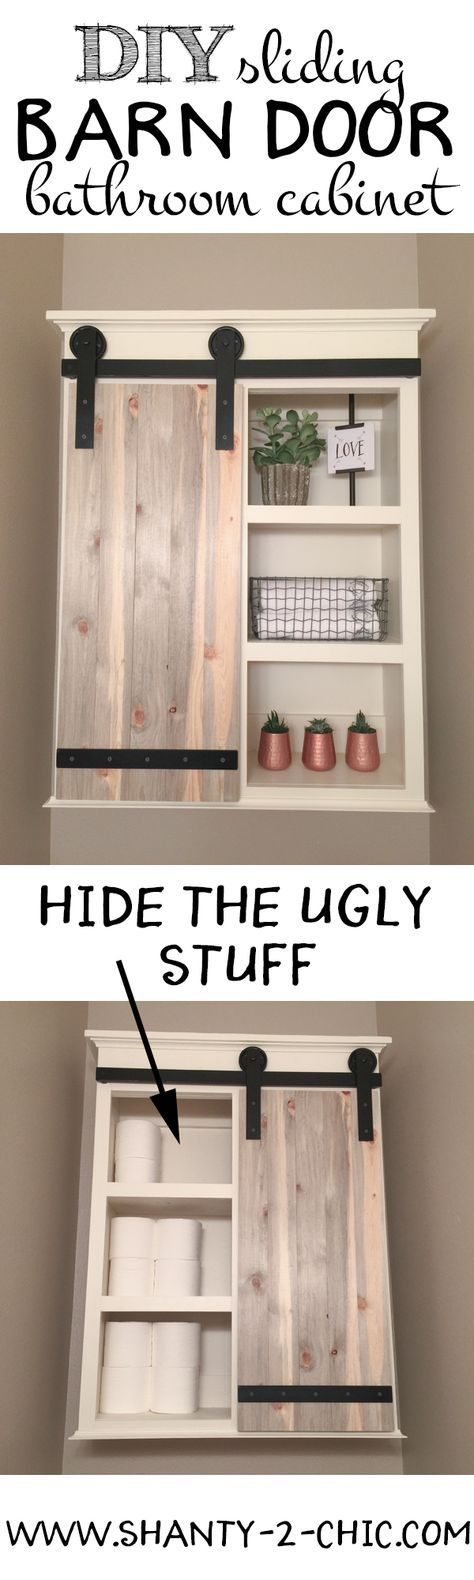 How to make a barn door cabinet